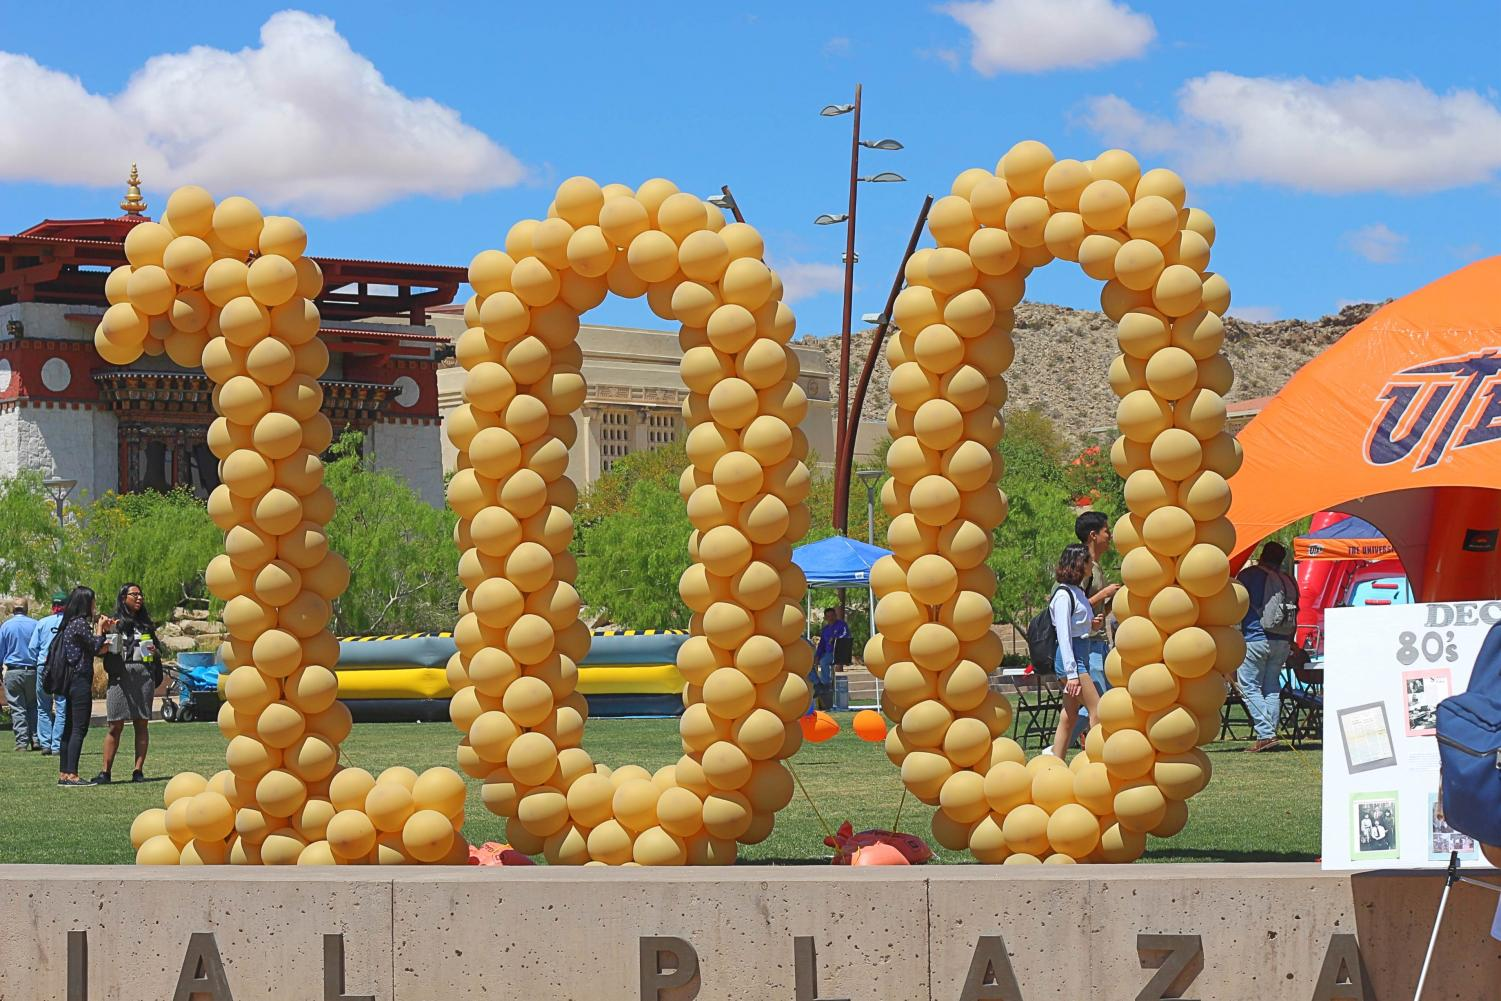 Celebration of UTEP's Student Government Association (SGA) 100 years of service at Centennial Plaza.